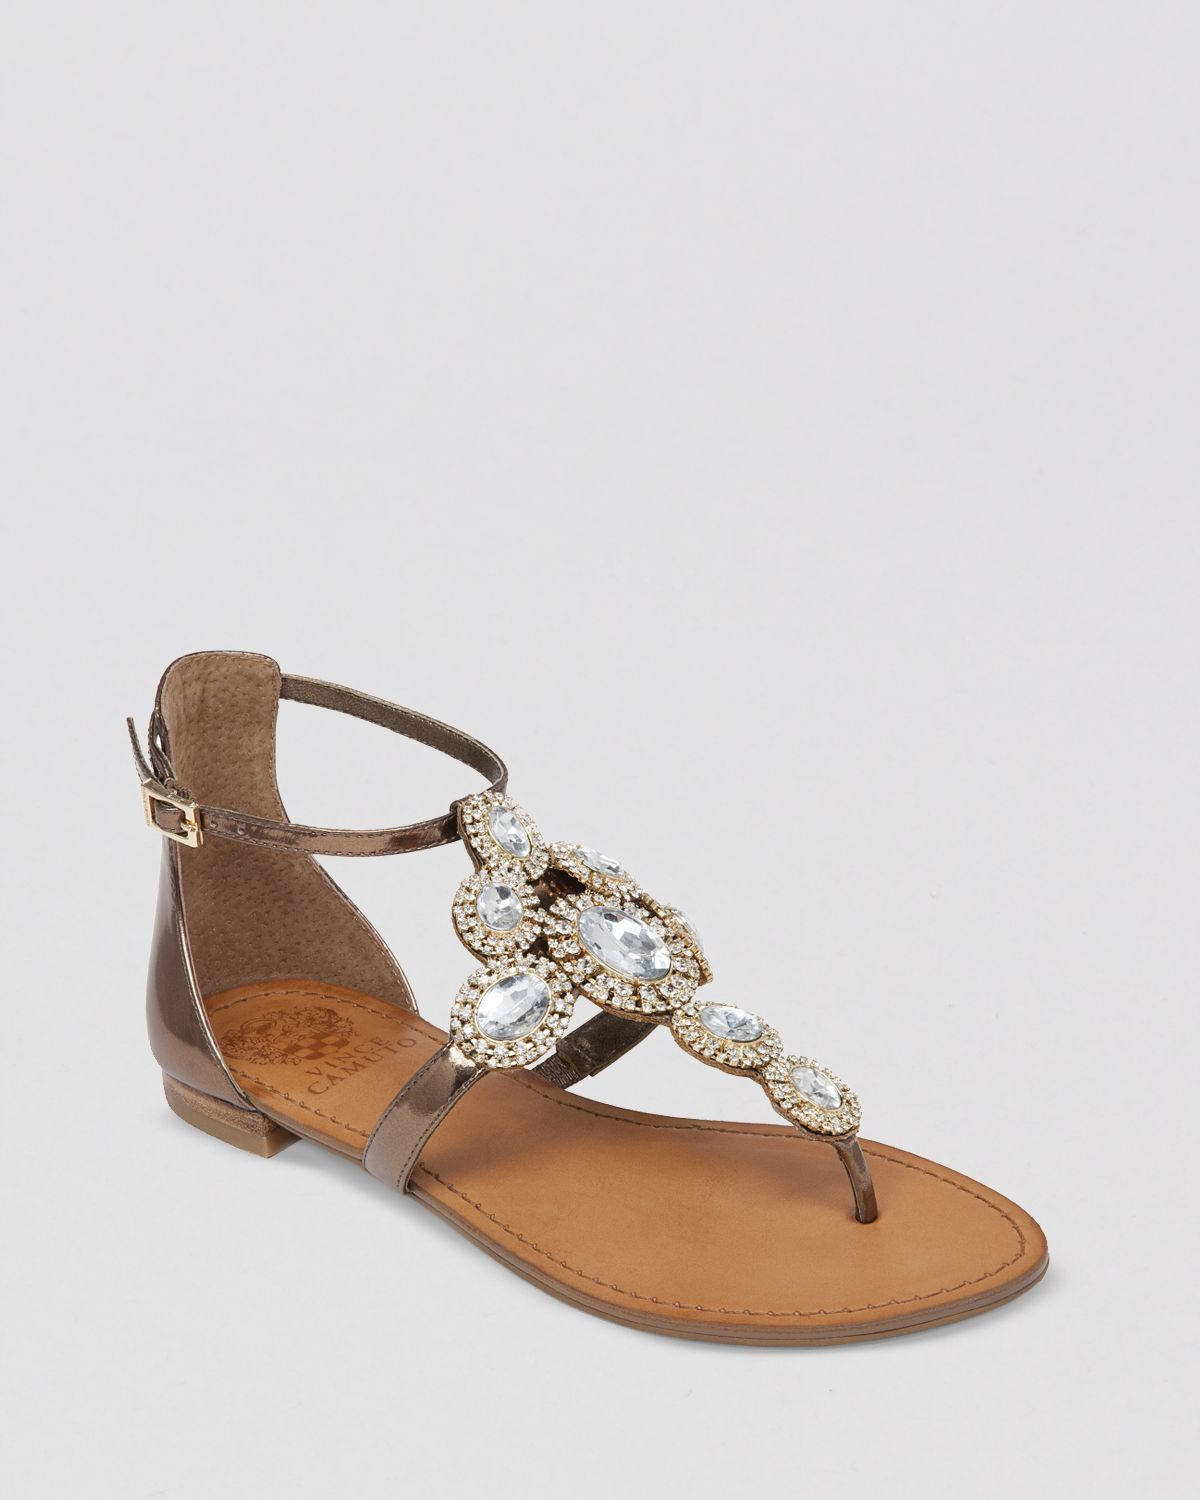 Vince Camuto Jeweled Thong Flat Sandals Manelle In Gold